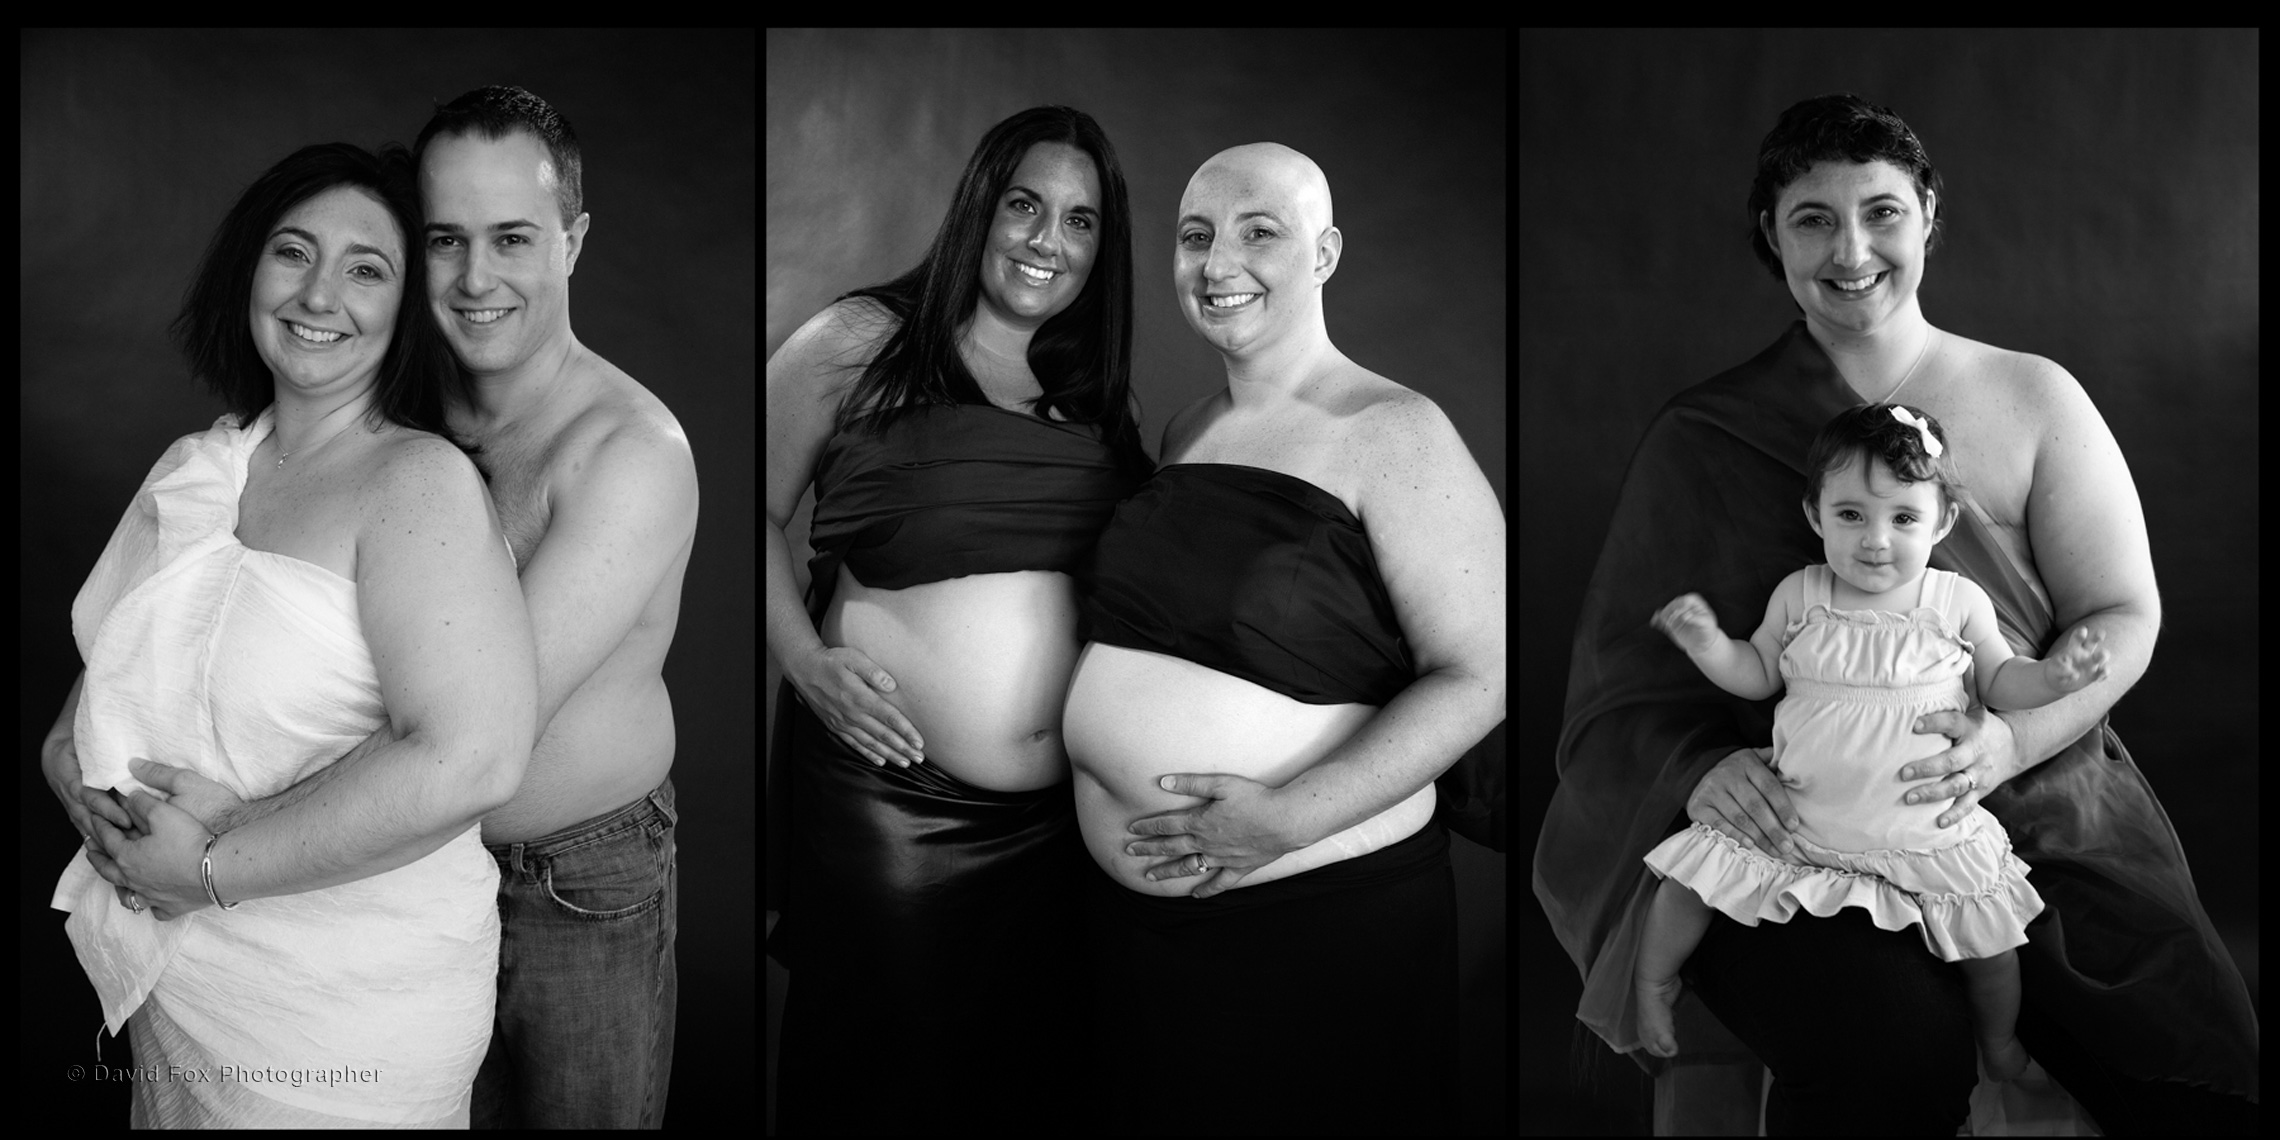 Faces of Breast Cancer David Fox Photographer Art BeCAUSE